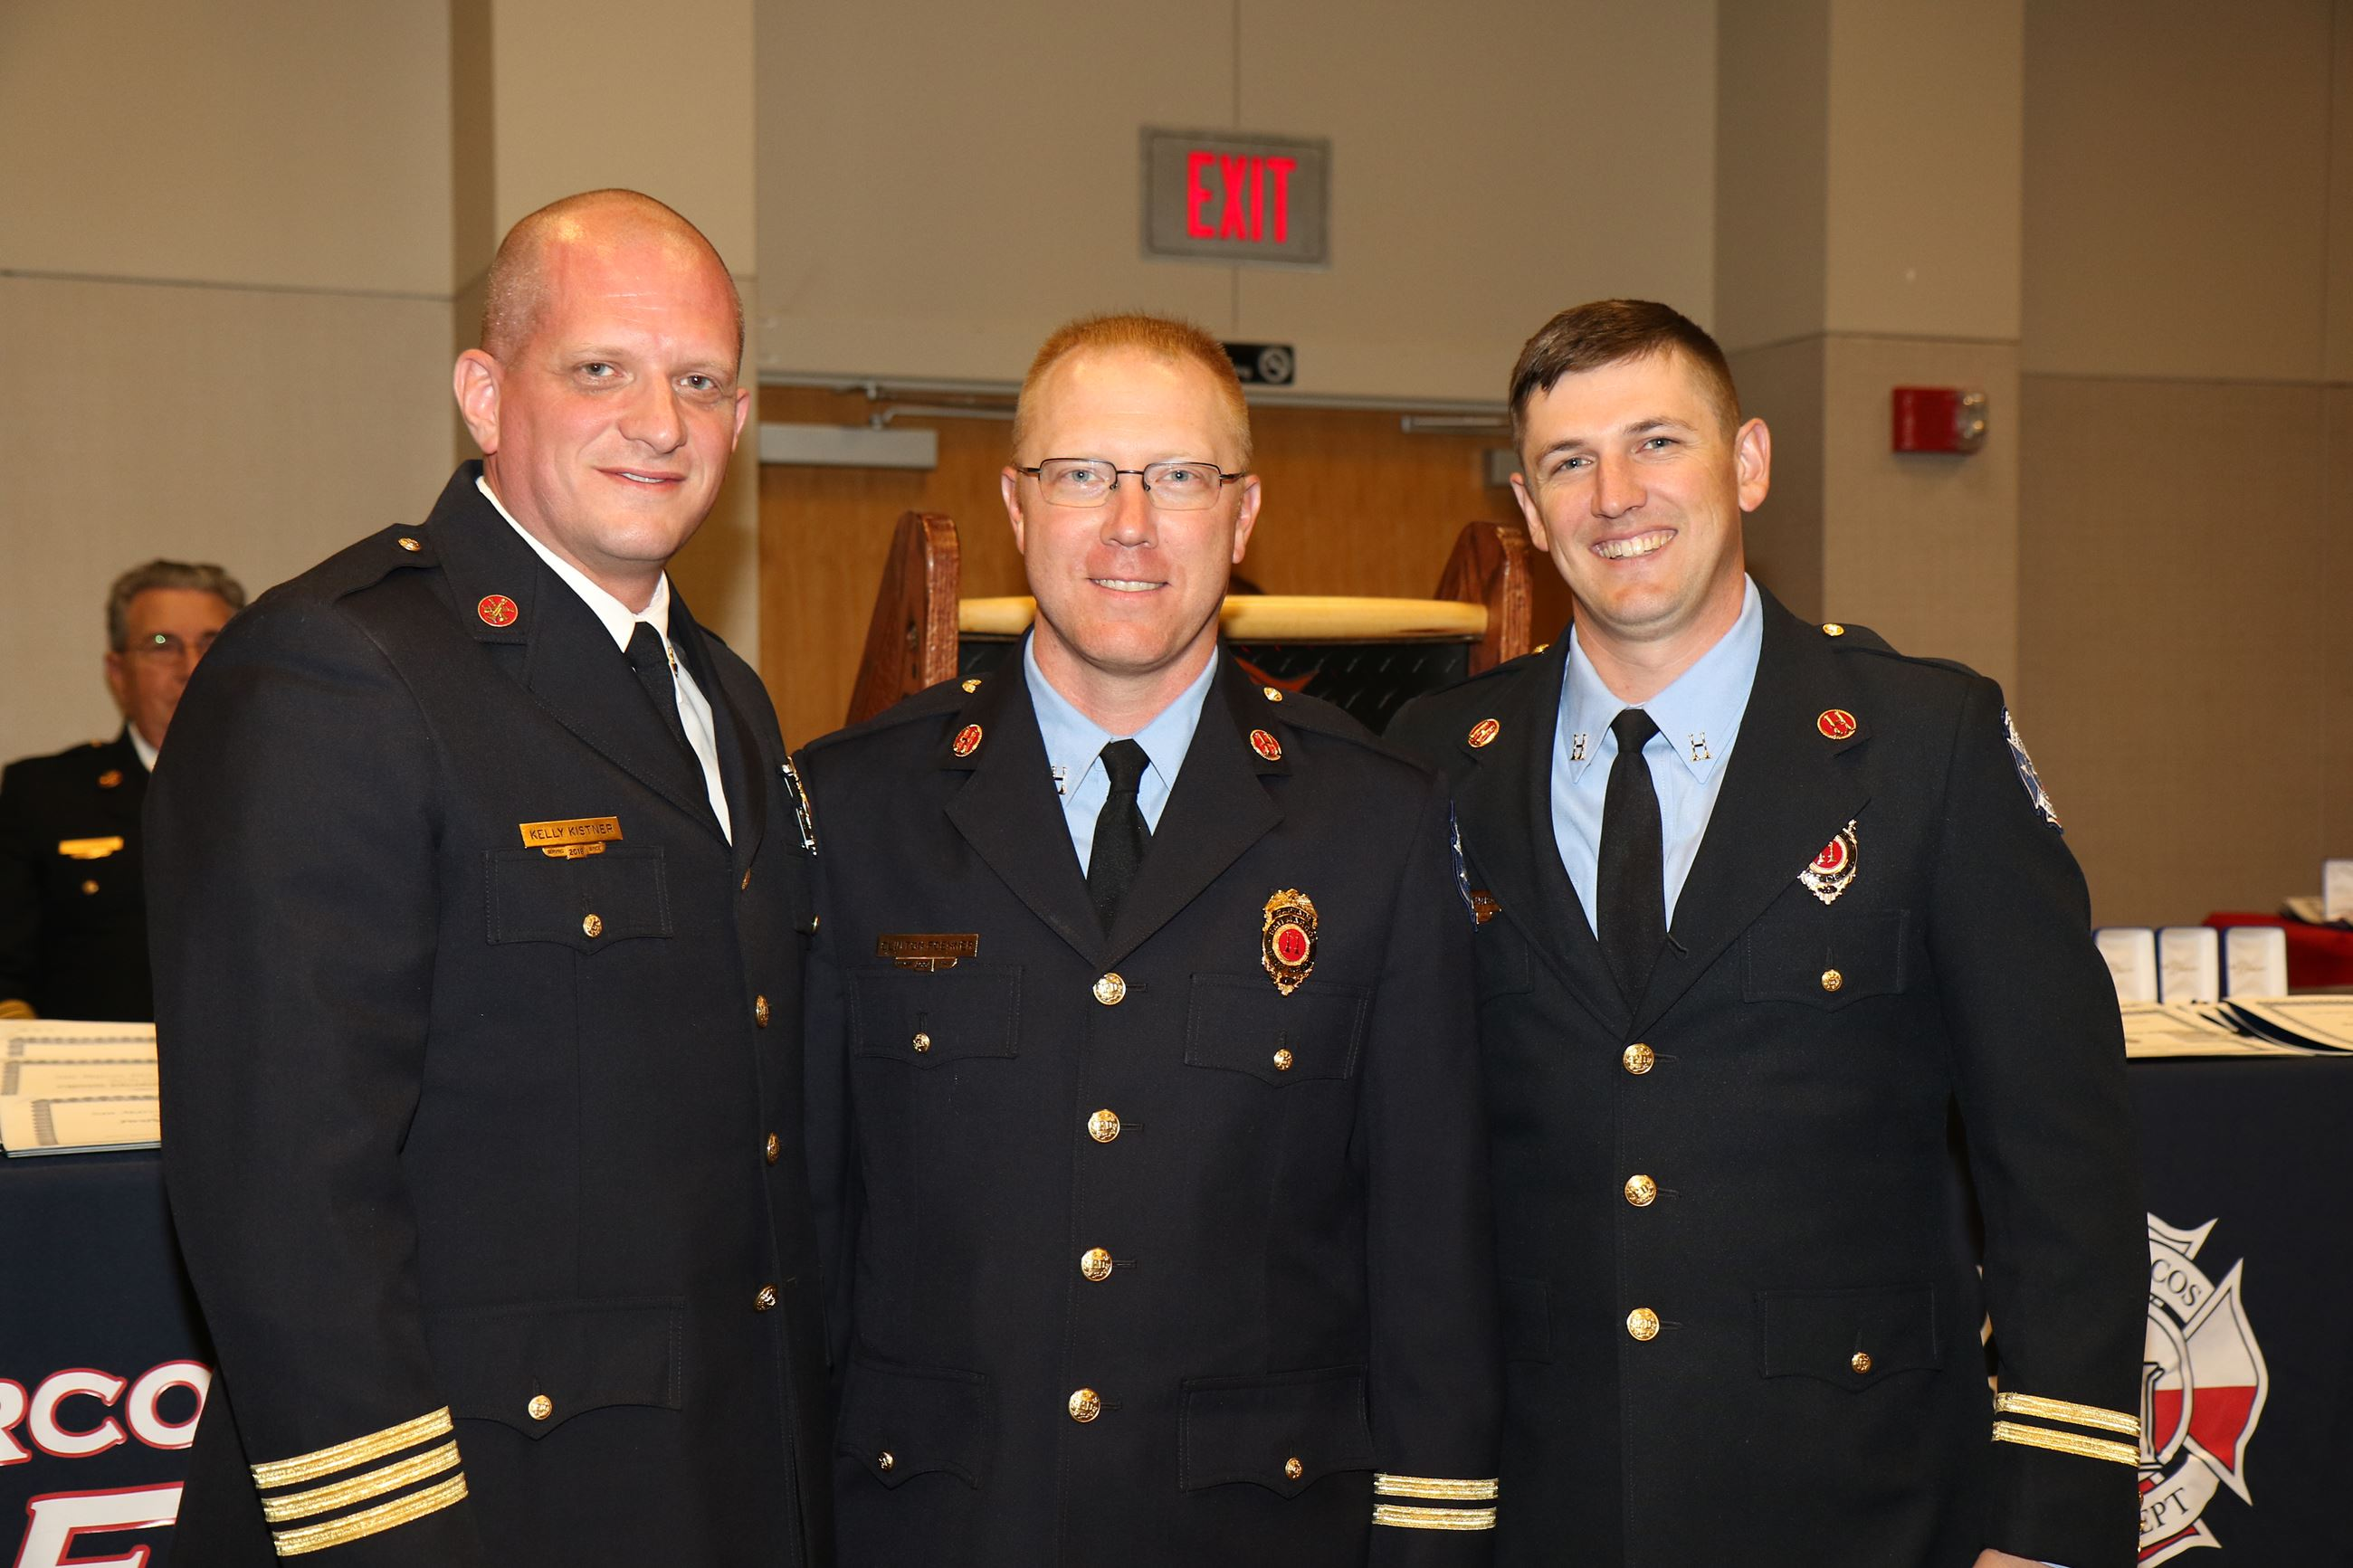 Fire Marshal Kelly Kistner, Captains Clint Foehner & Jonathan Henderson